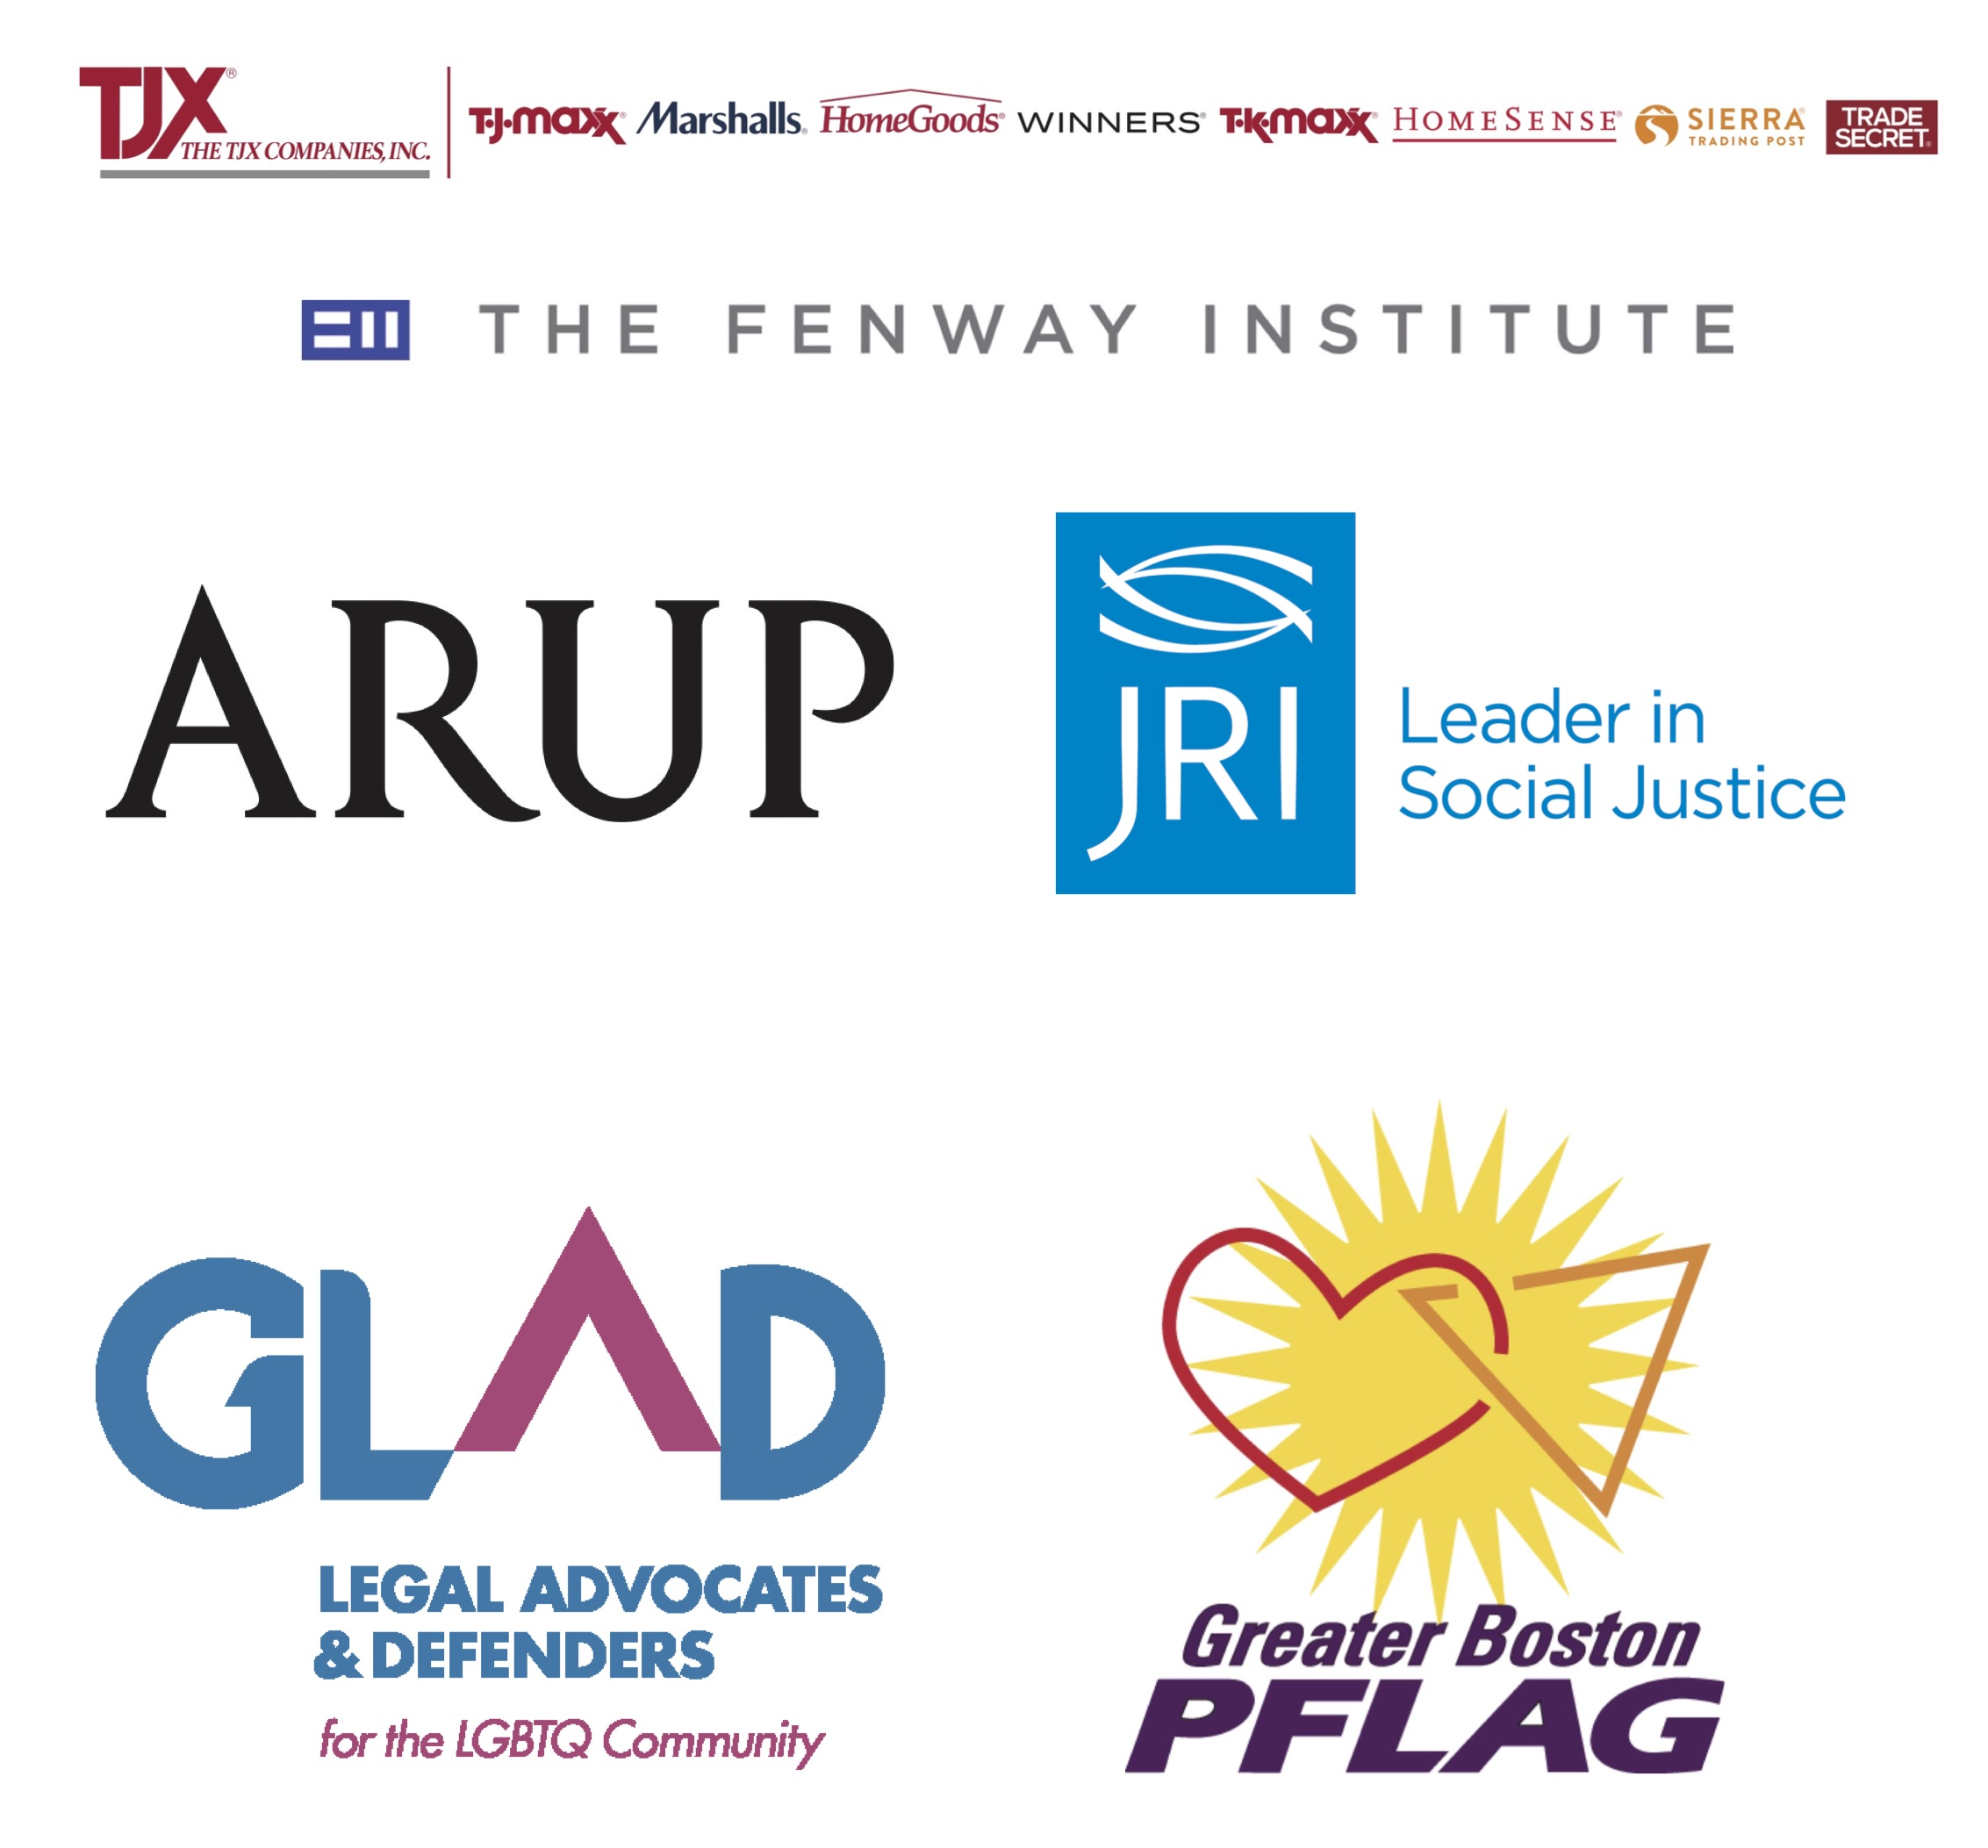 A collage of logos from our event sponsors, including TJX, The Fenway Institute, Arup, Justice Resource Institute, GLAD, and Greater Boston PFLAG